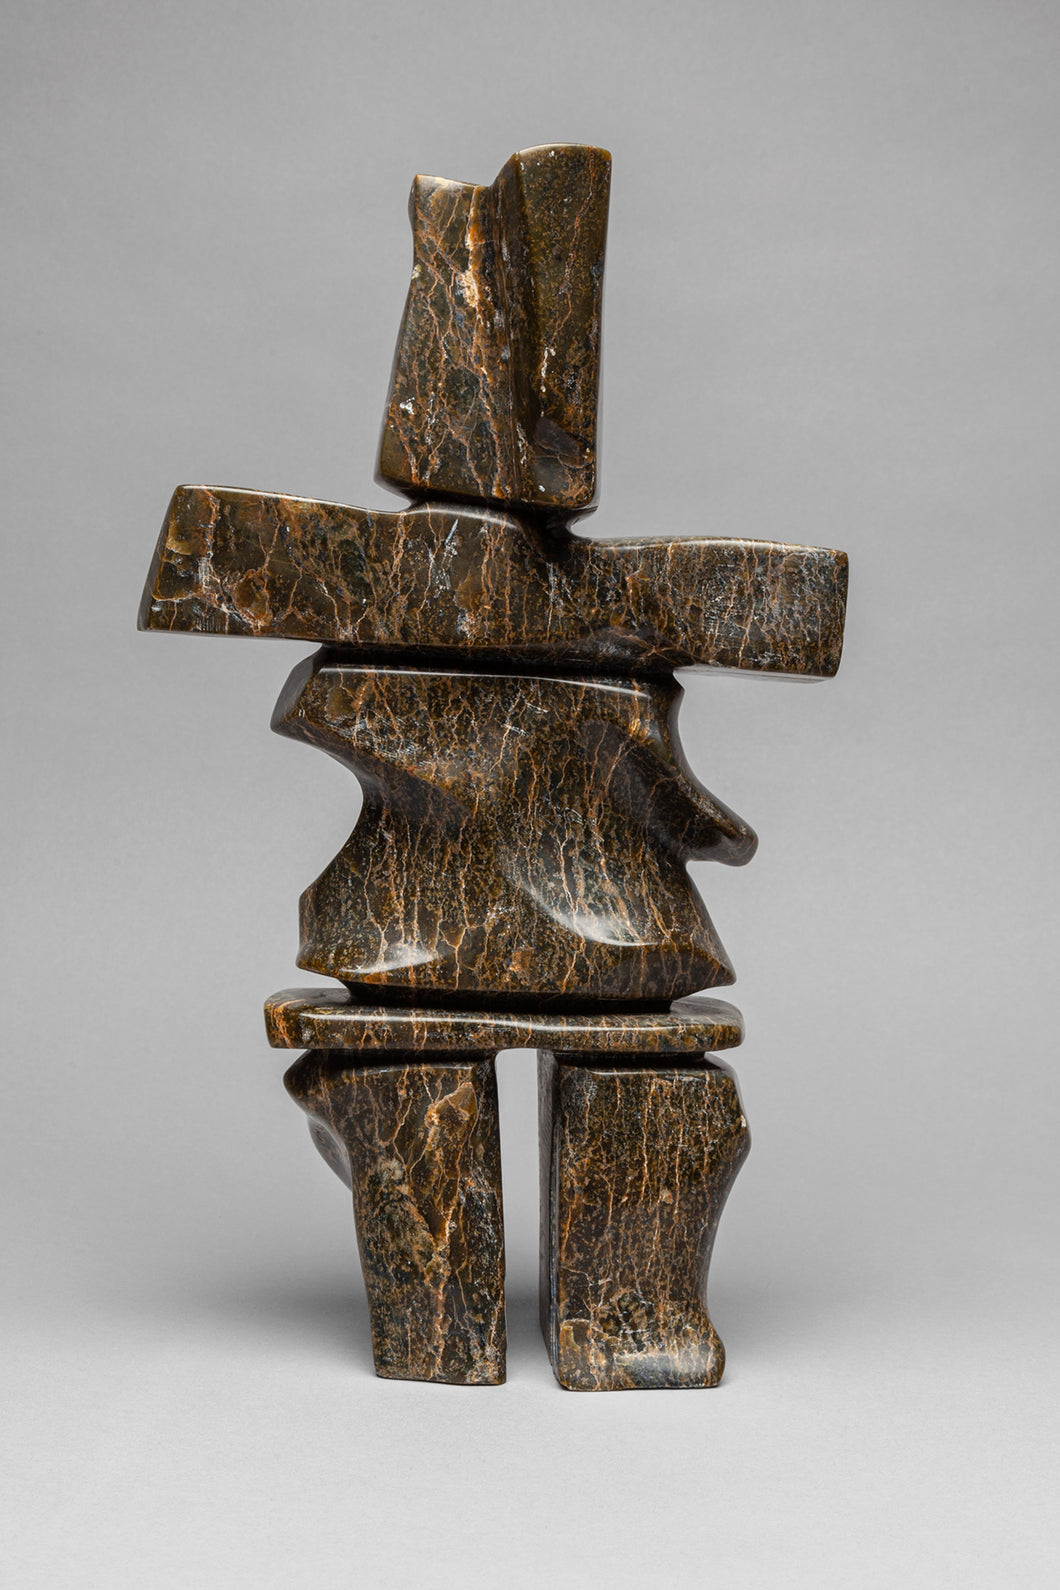 Inukshuk (Image of Man) by Isaac Oqutaq, Inuit